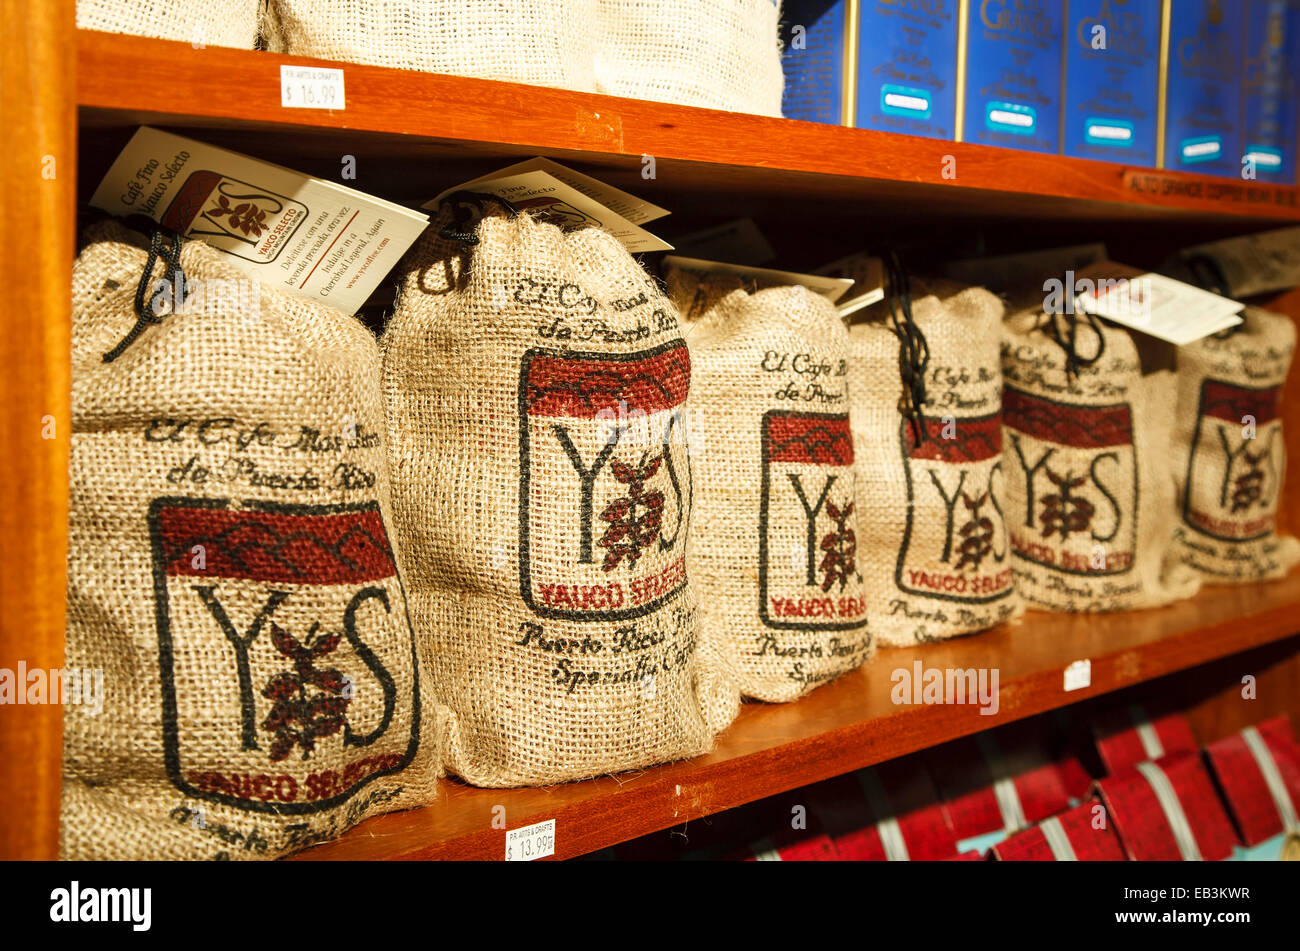 Puerto Rican coffee packages, Old San Juan, Puerto Rico - Stock Image